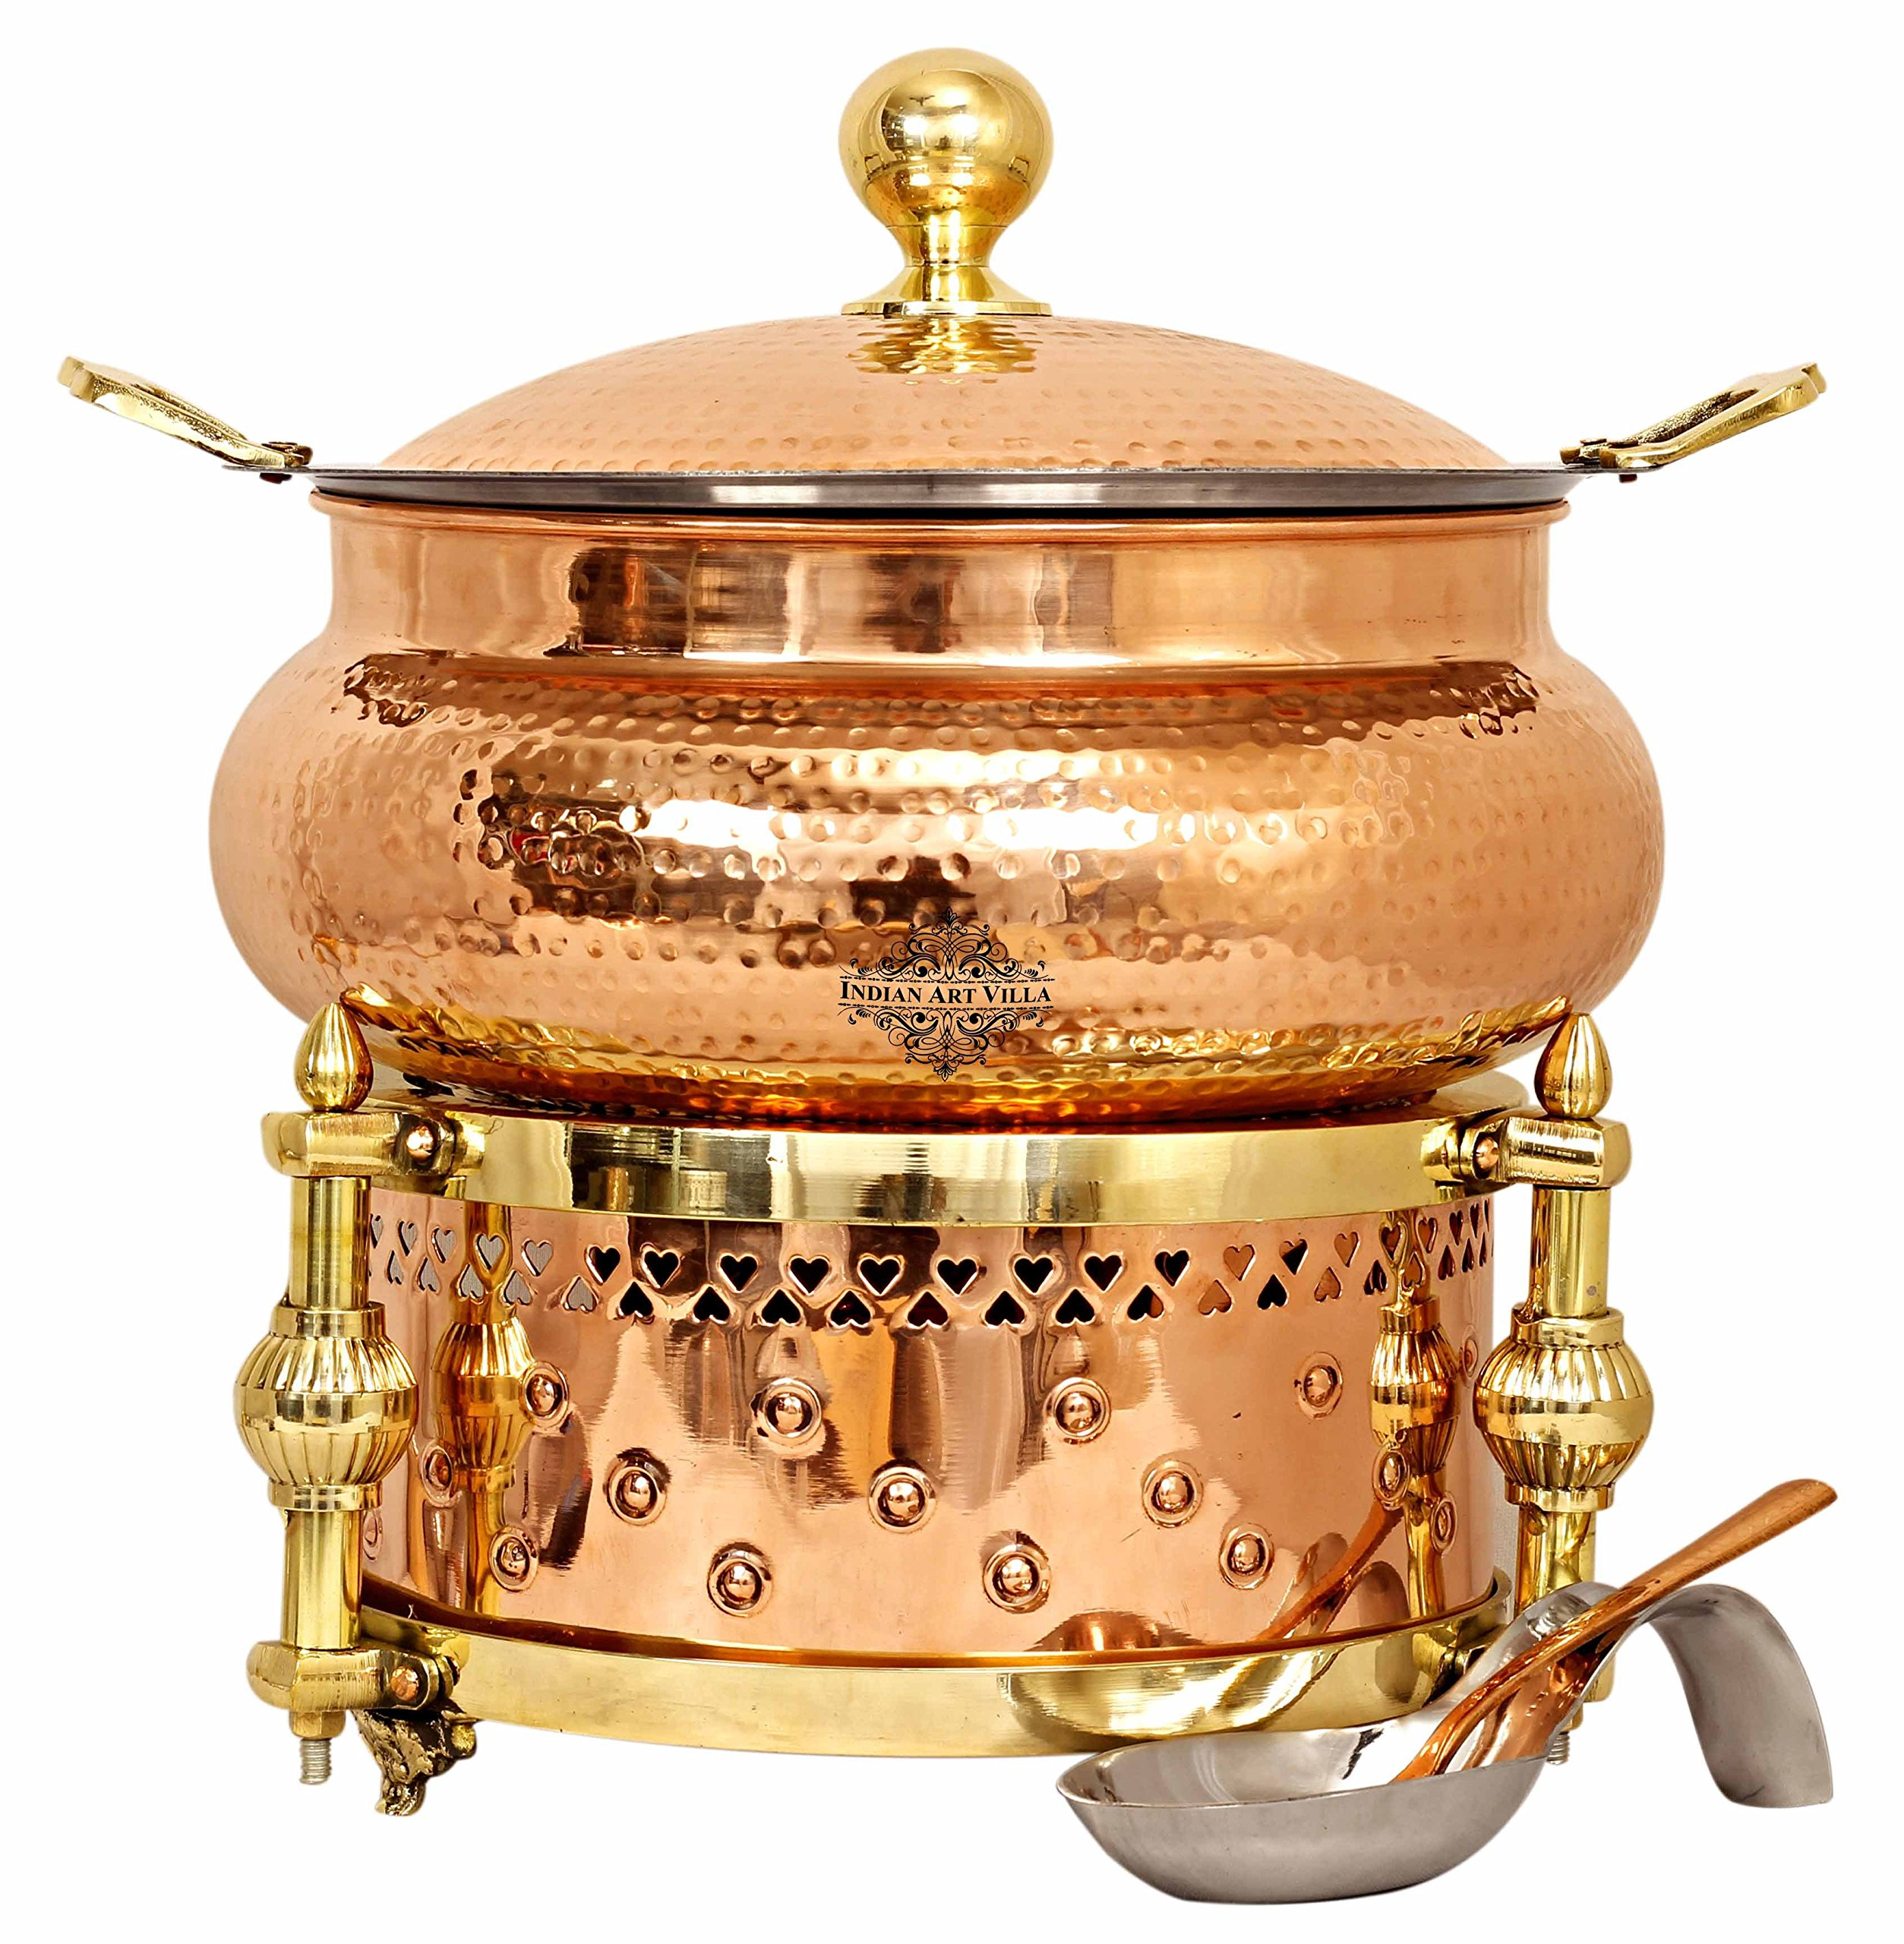 Indian Art Villa Steel Copper Chafing Dish with Sigdi Design Gel Fuel Stand, Buffet Warmer Serveware Party, 202 OZ